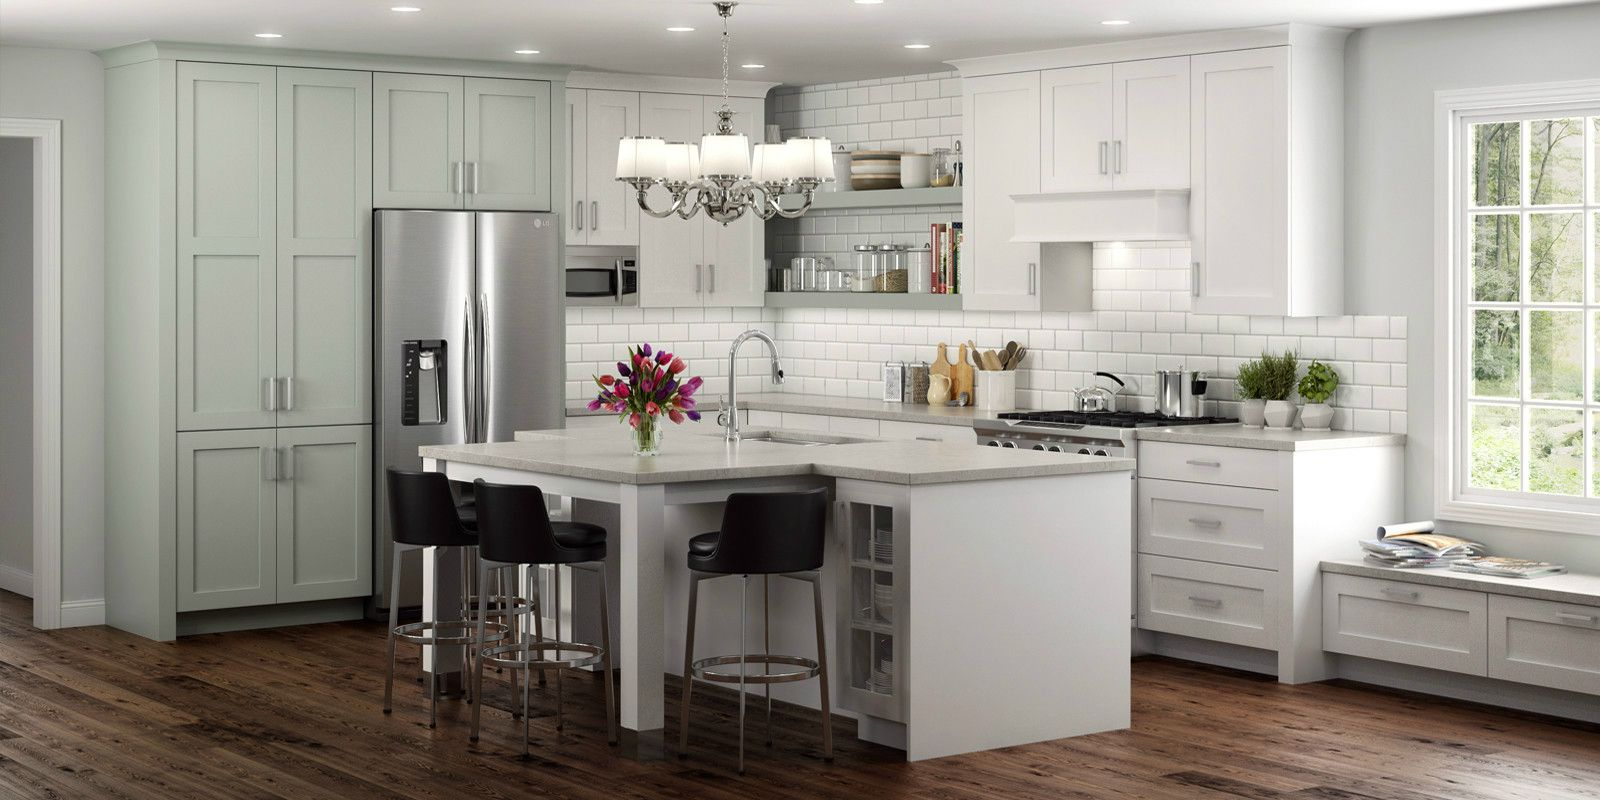 Best Latitude Cabinets At Lowe's Modern Frameless Kitchen And 400 x 300